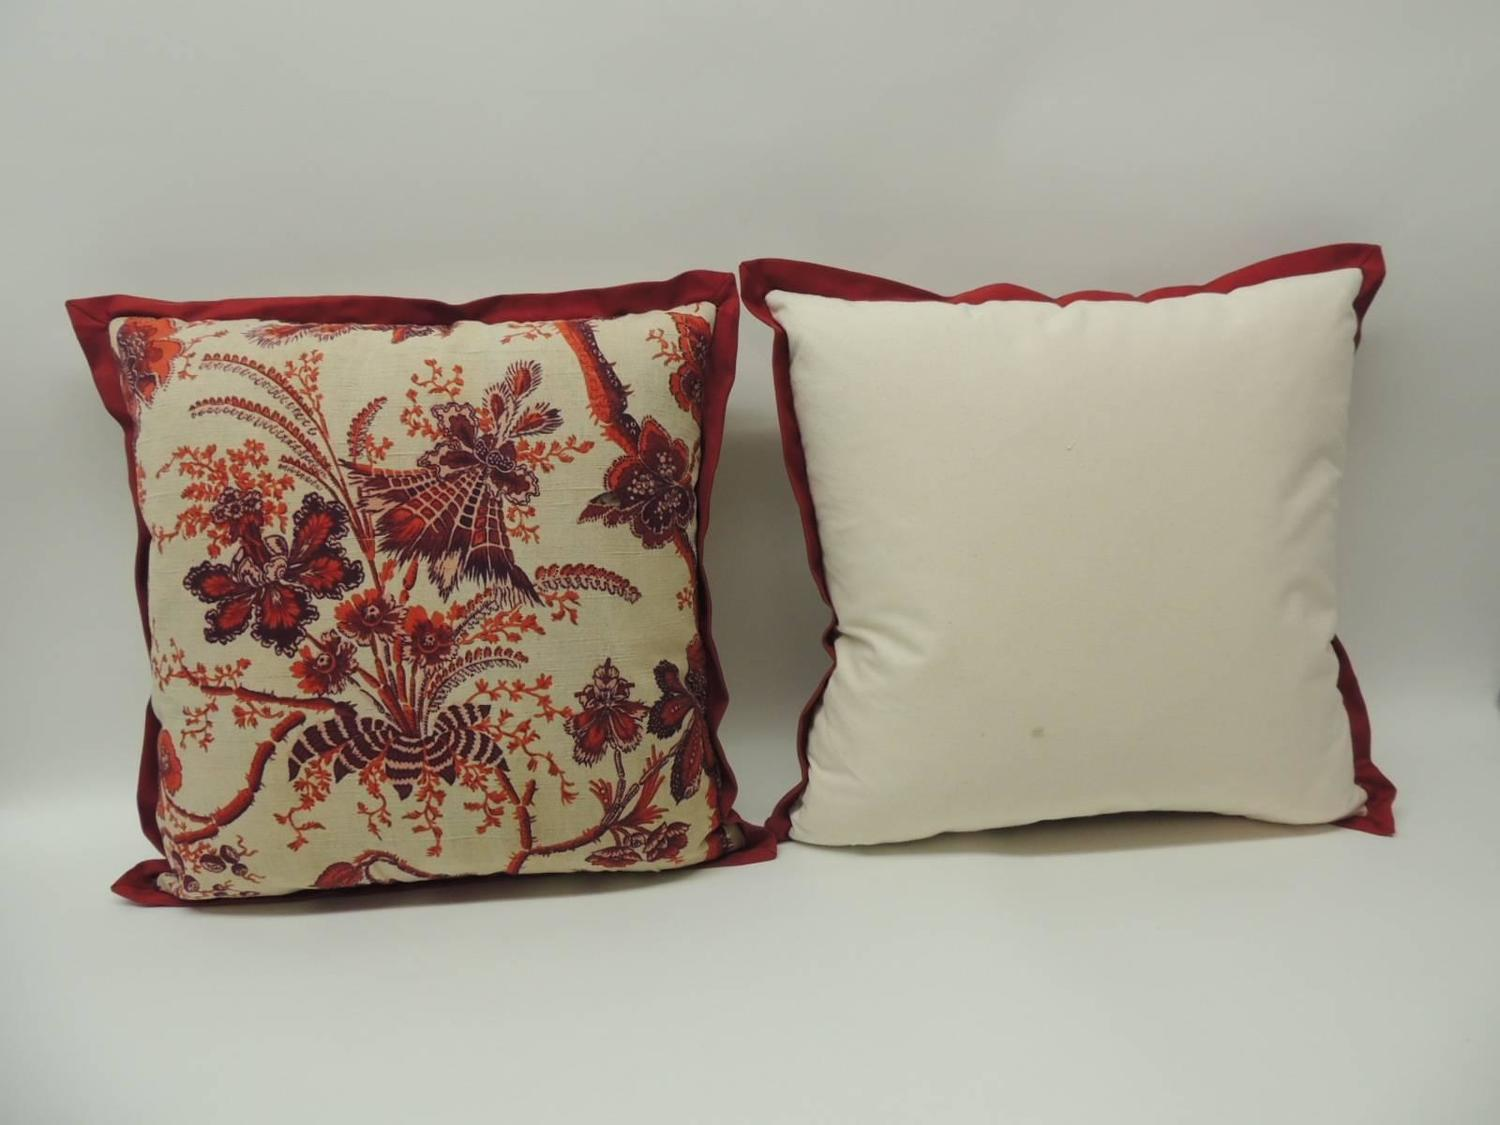 Pair of Vintage French Scarlet Red Printed Linen Decorative Pillows For Sale at 1stdibs